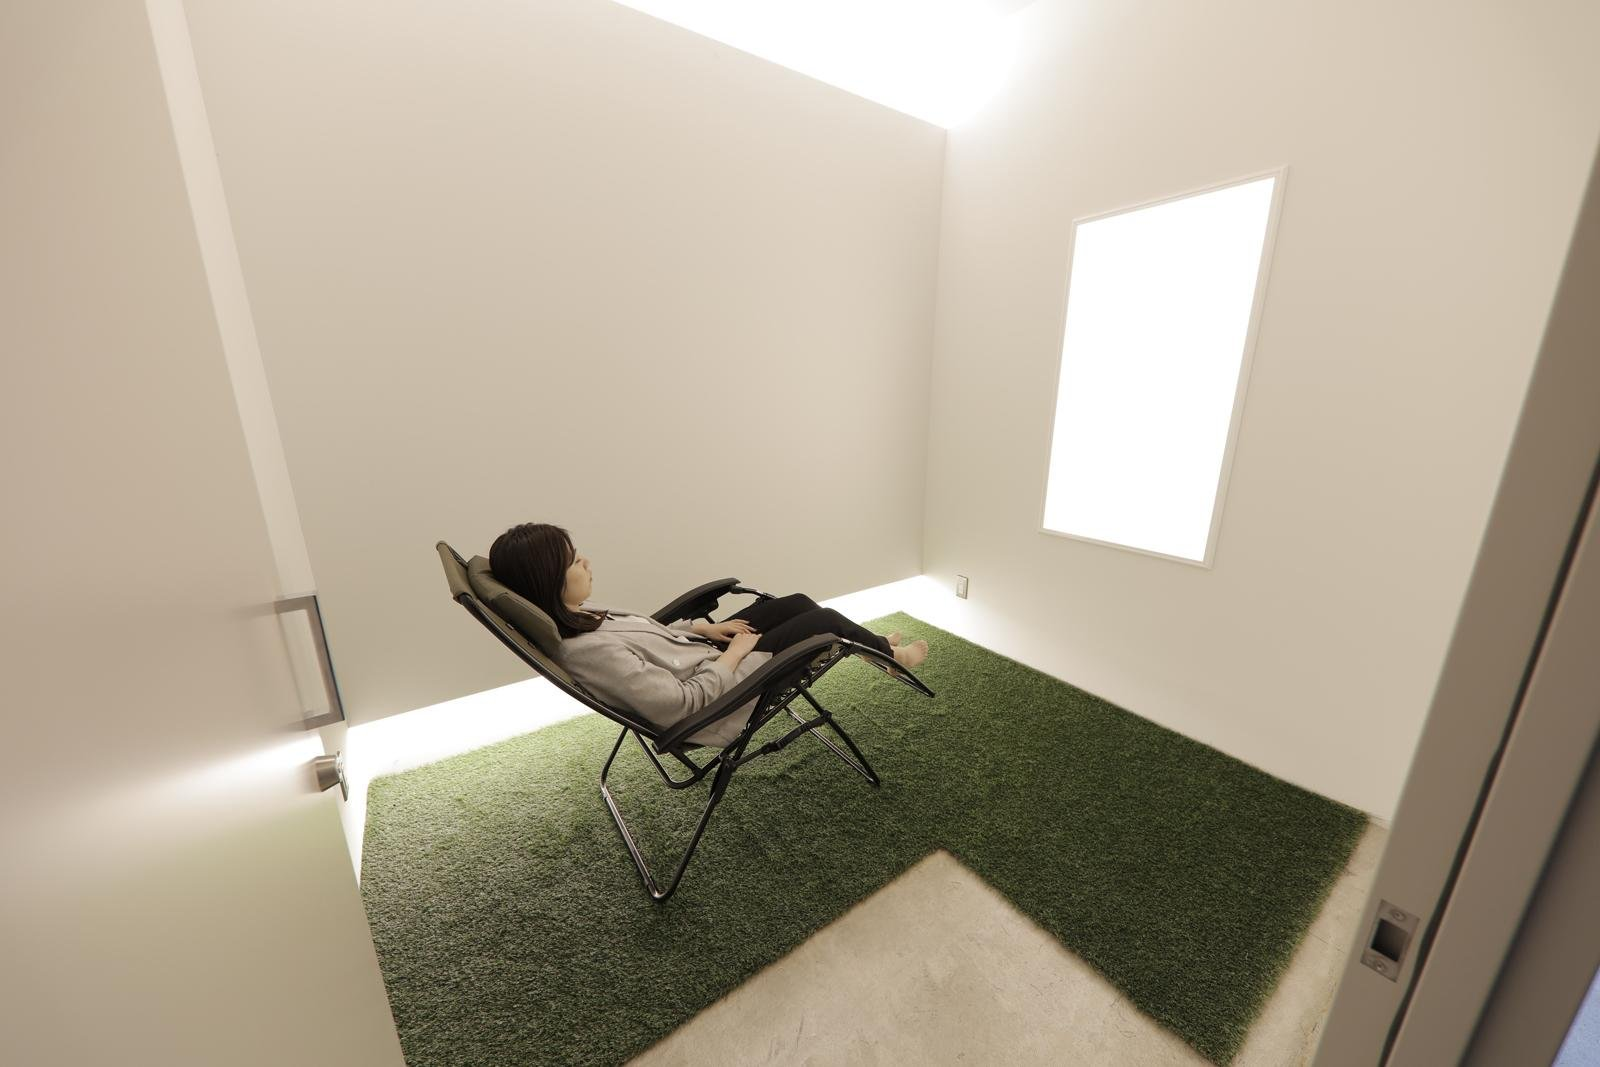 Photo: Nap room